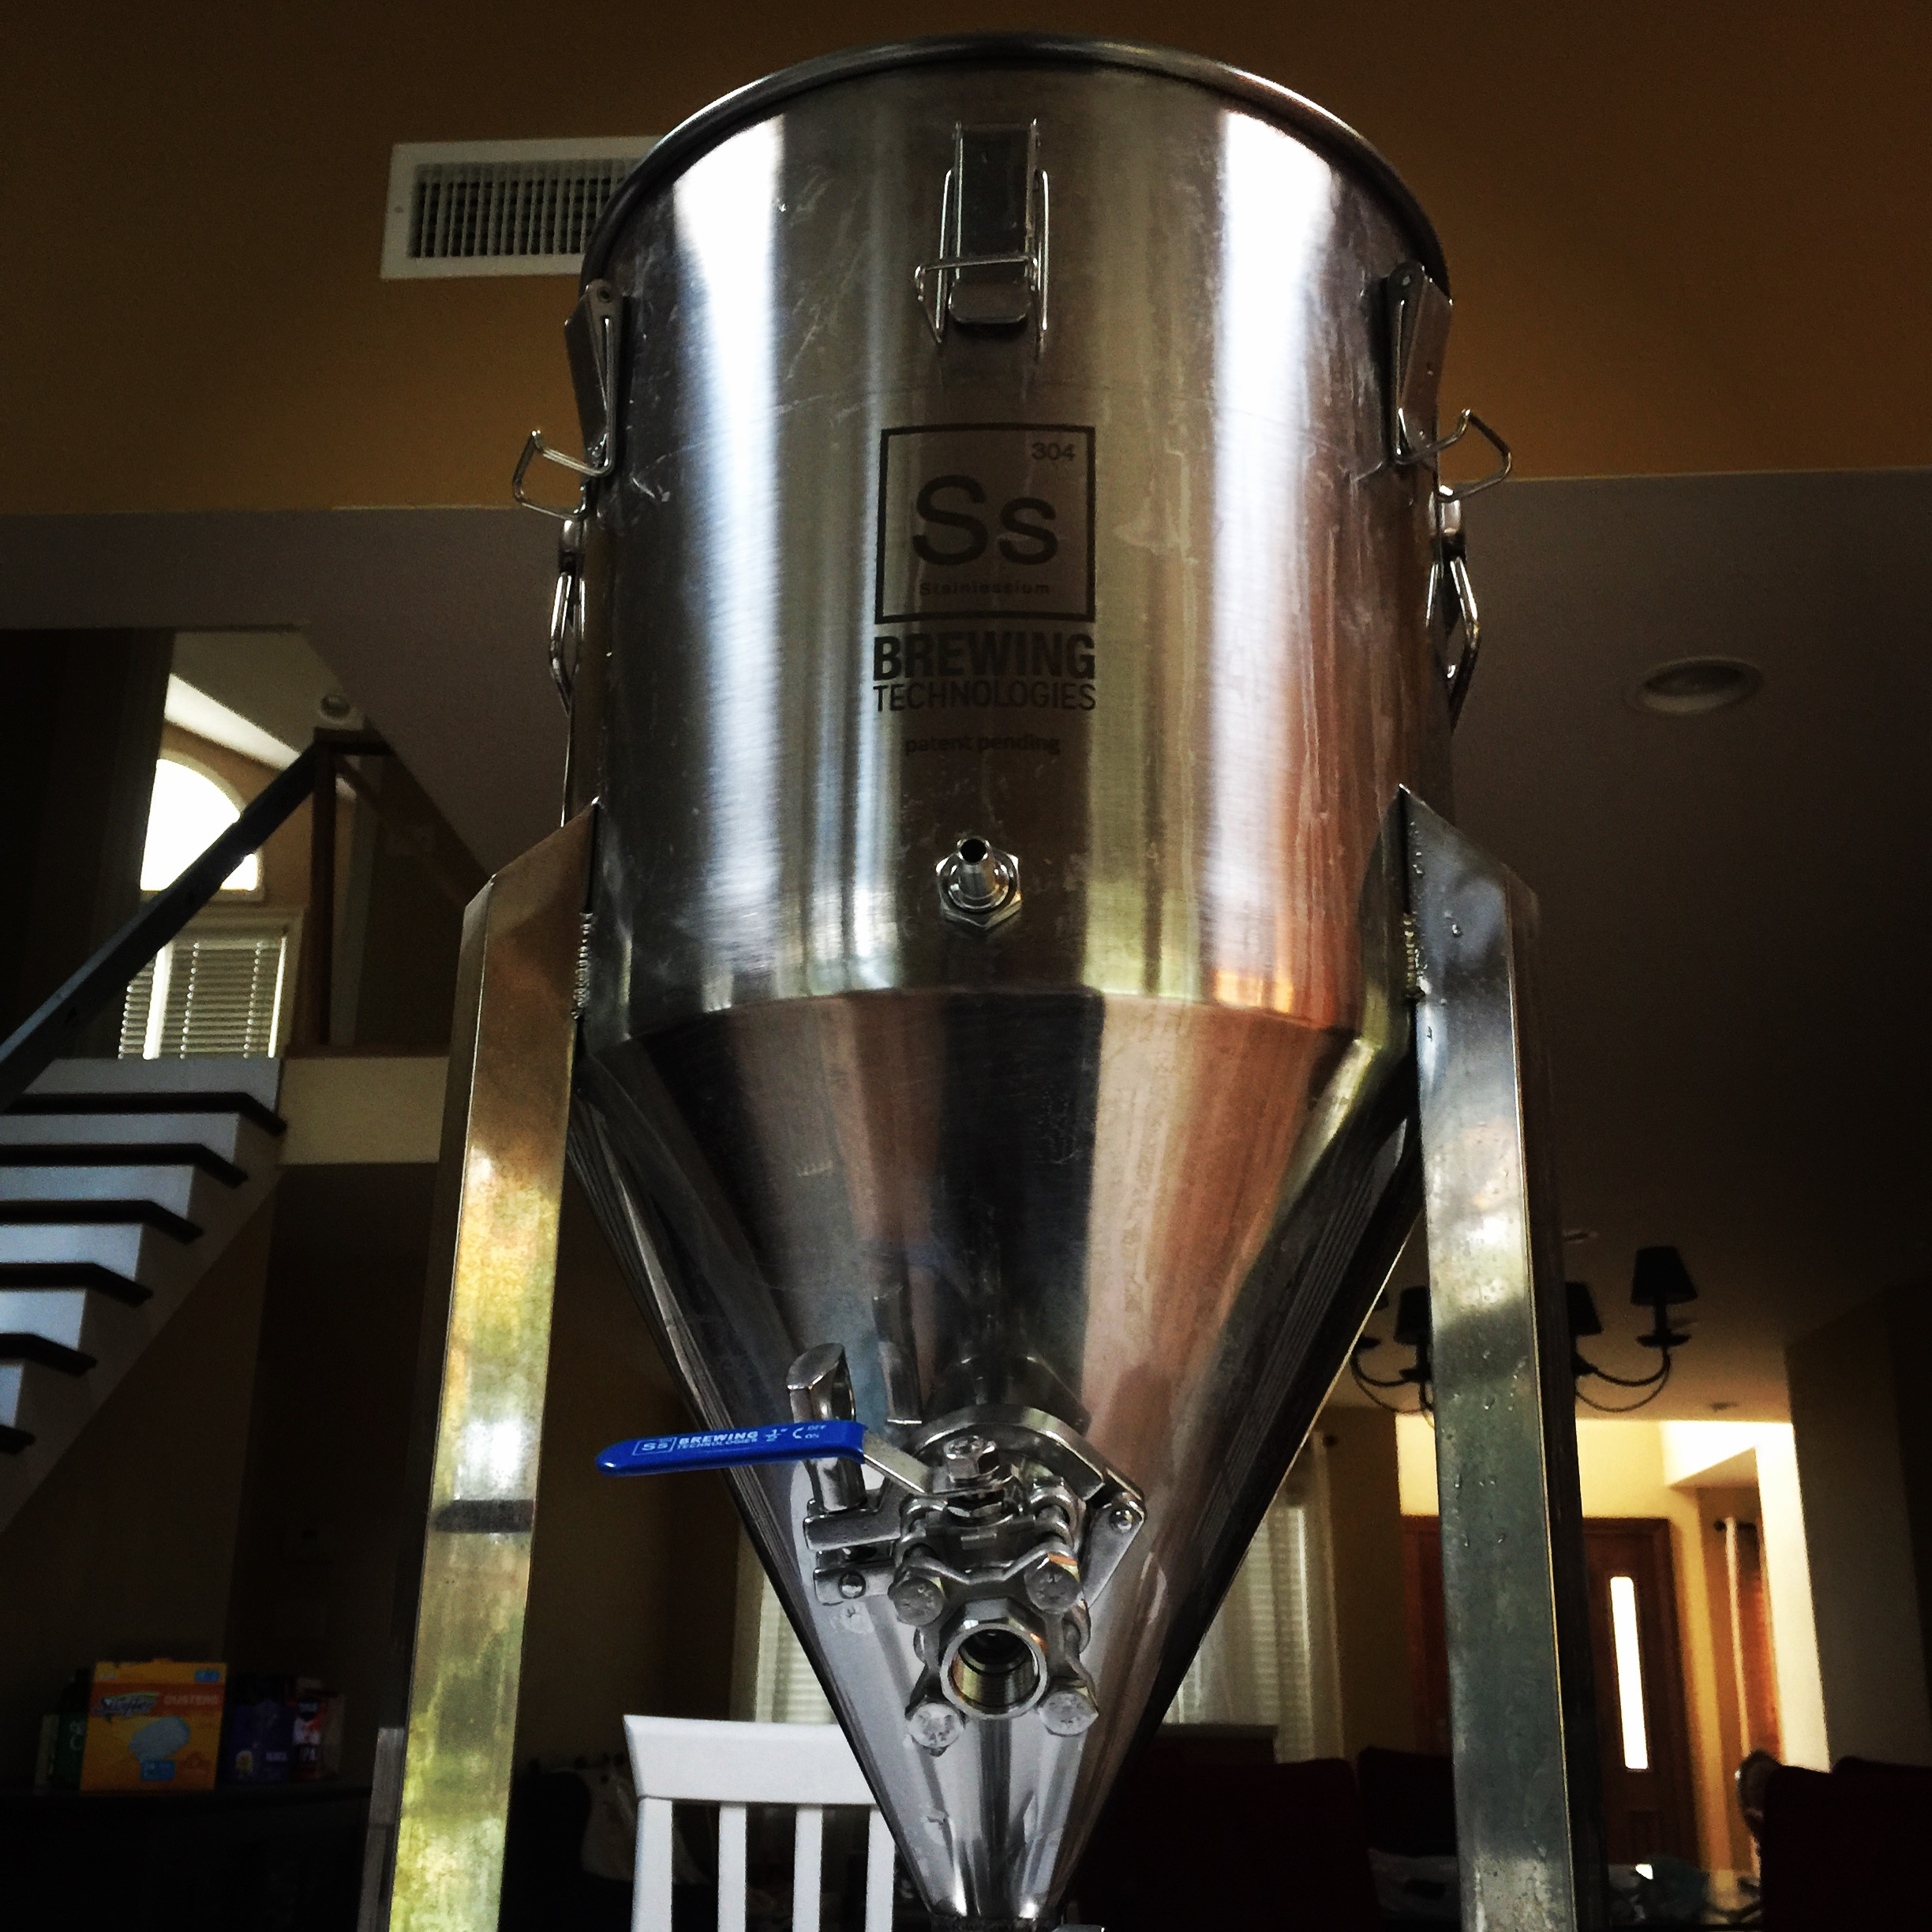 bellmore brewing ss brewtech fermenter.JPG